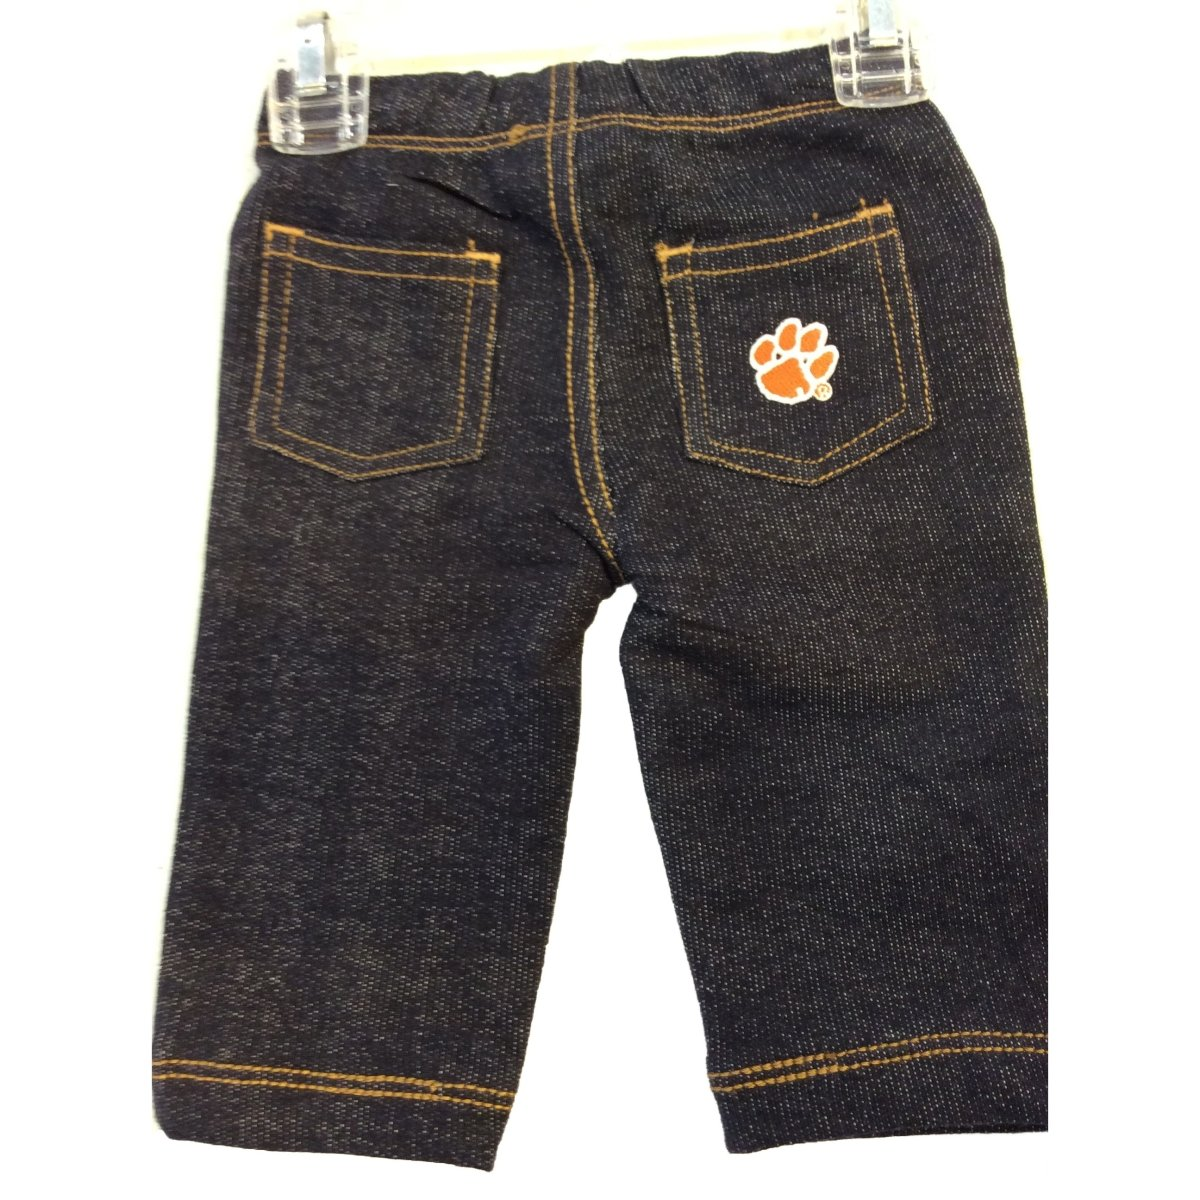 Infant Jean With Orange Paw White Outline - Mr. Knickerbocker